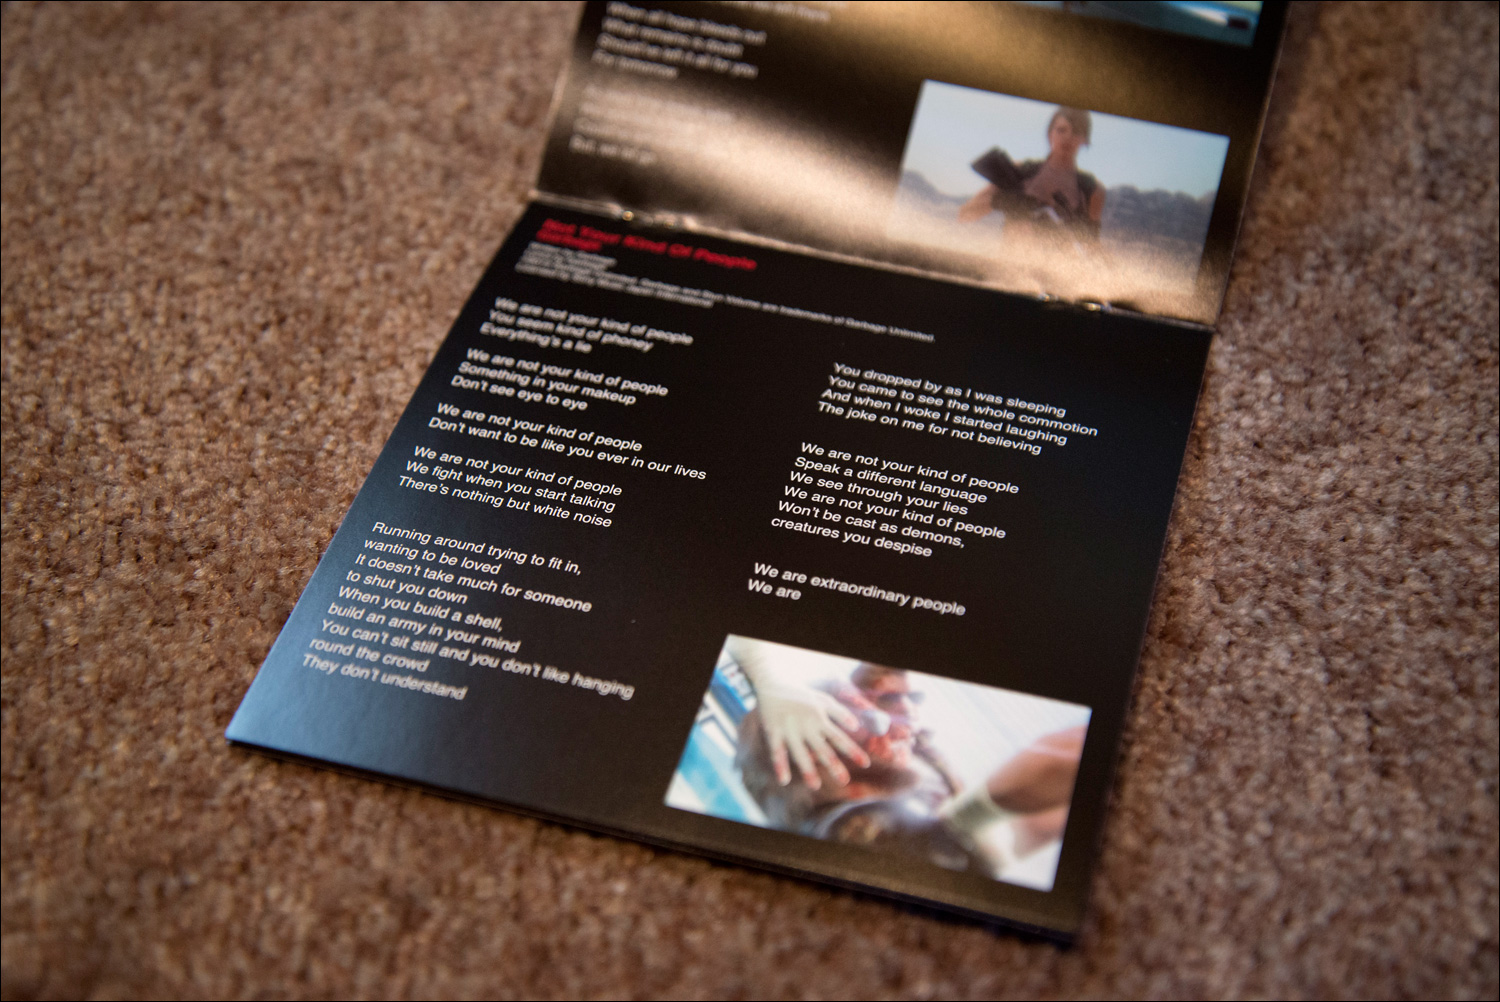 Metal-Gear-Solid-V-Original-Soundtrack-Booklet-Lyrics